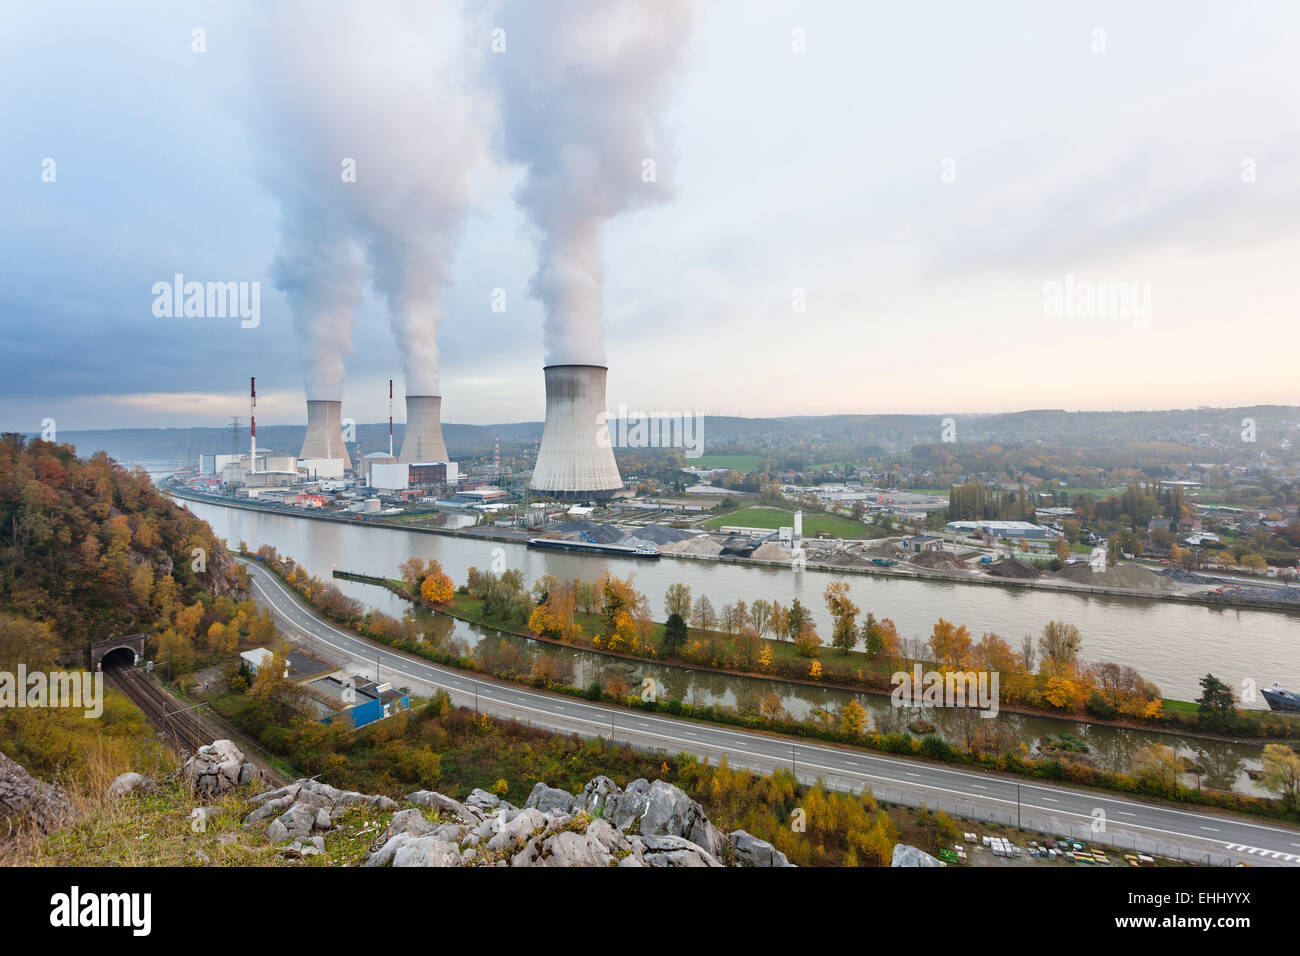 A large nuclear power station by a river in the evening - Stock Image